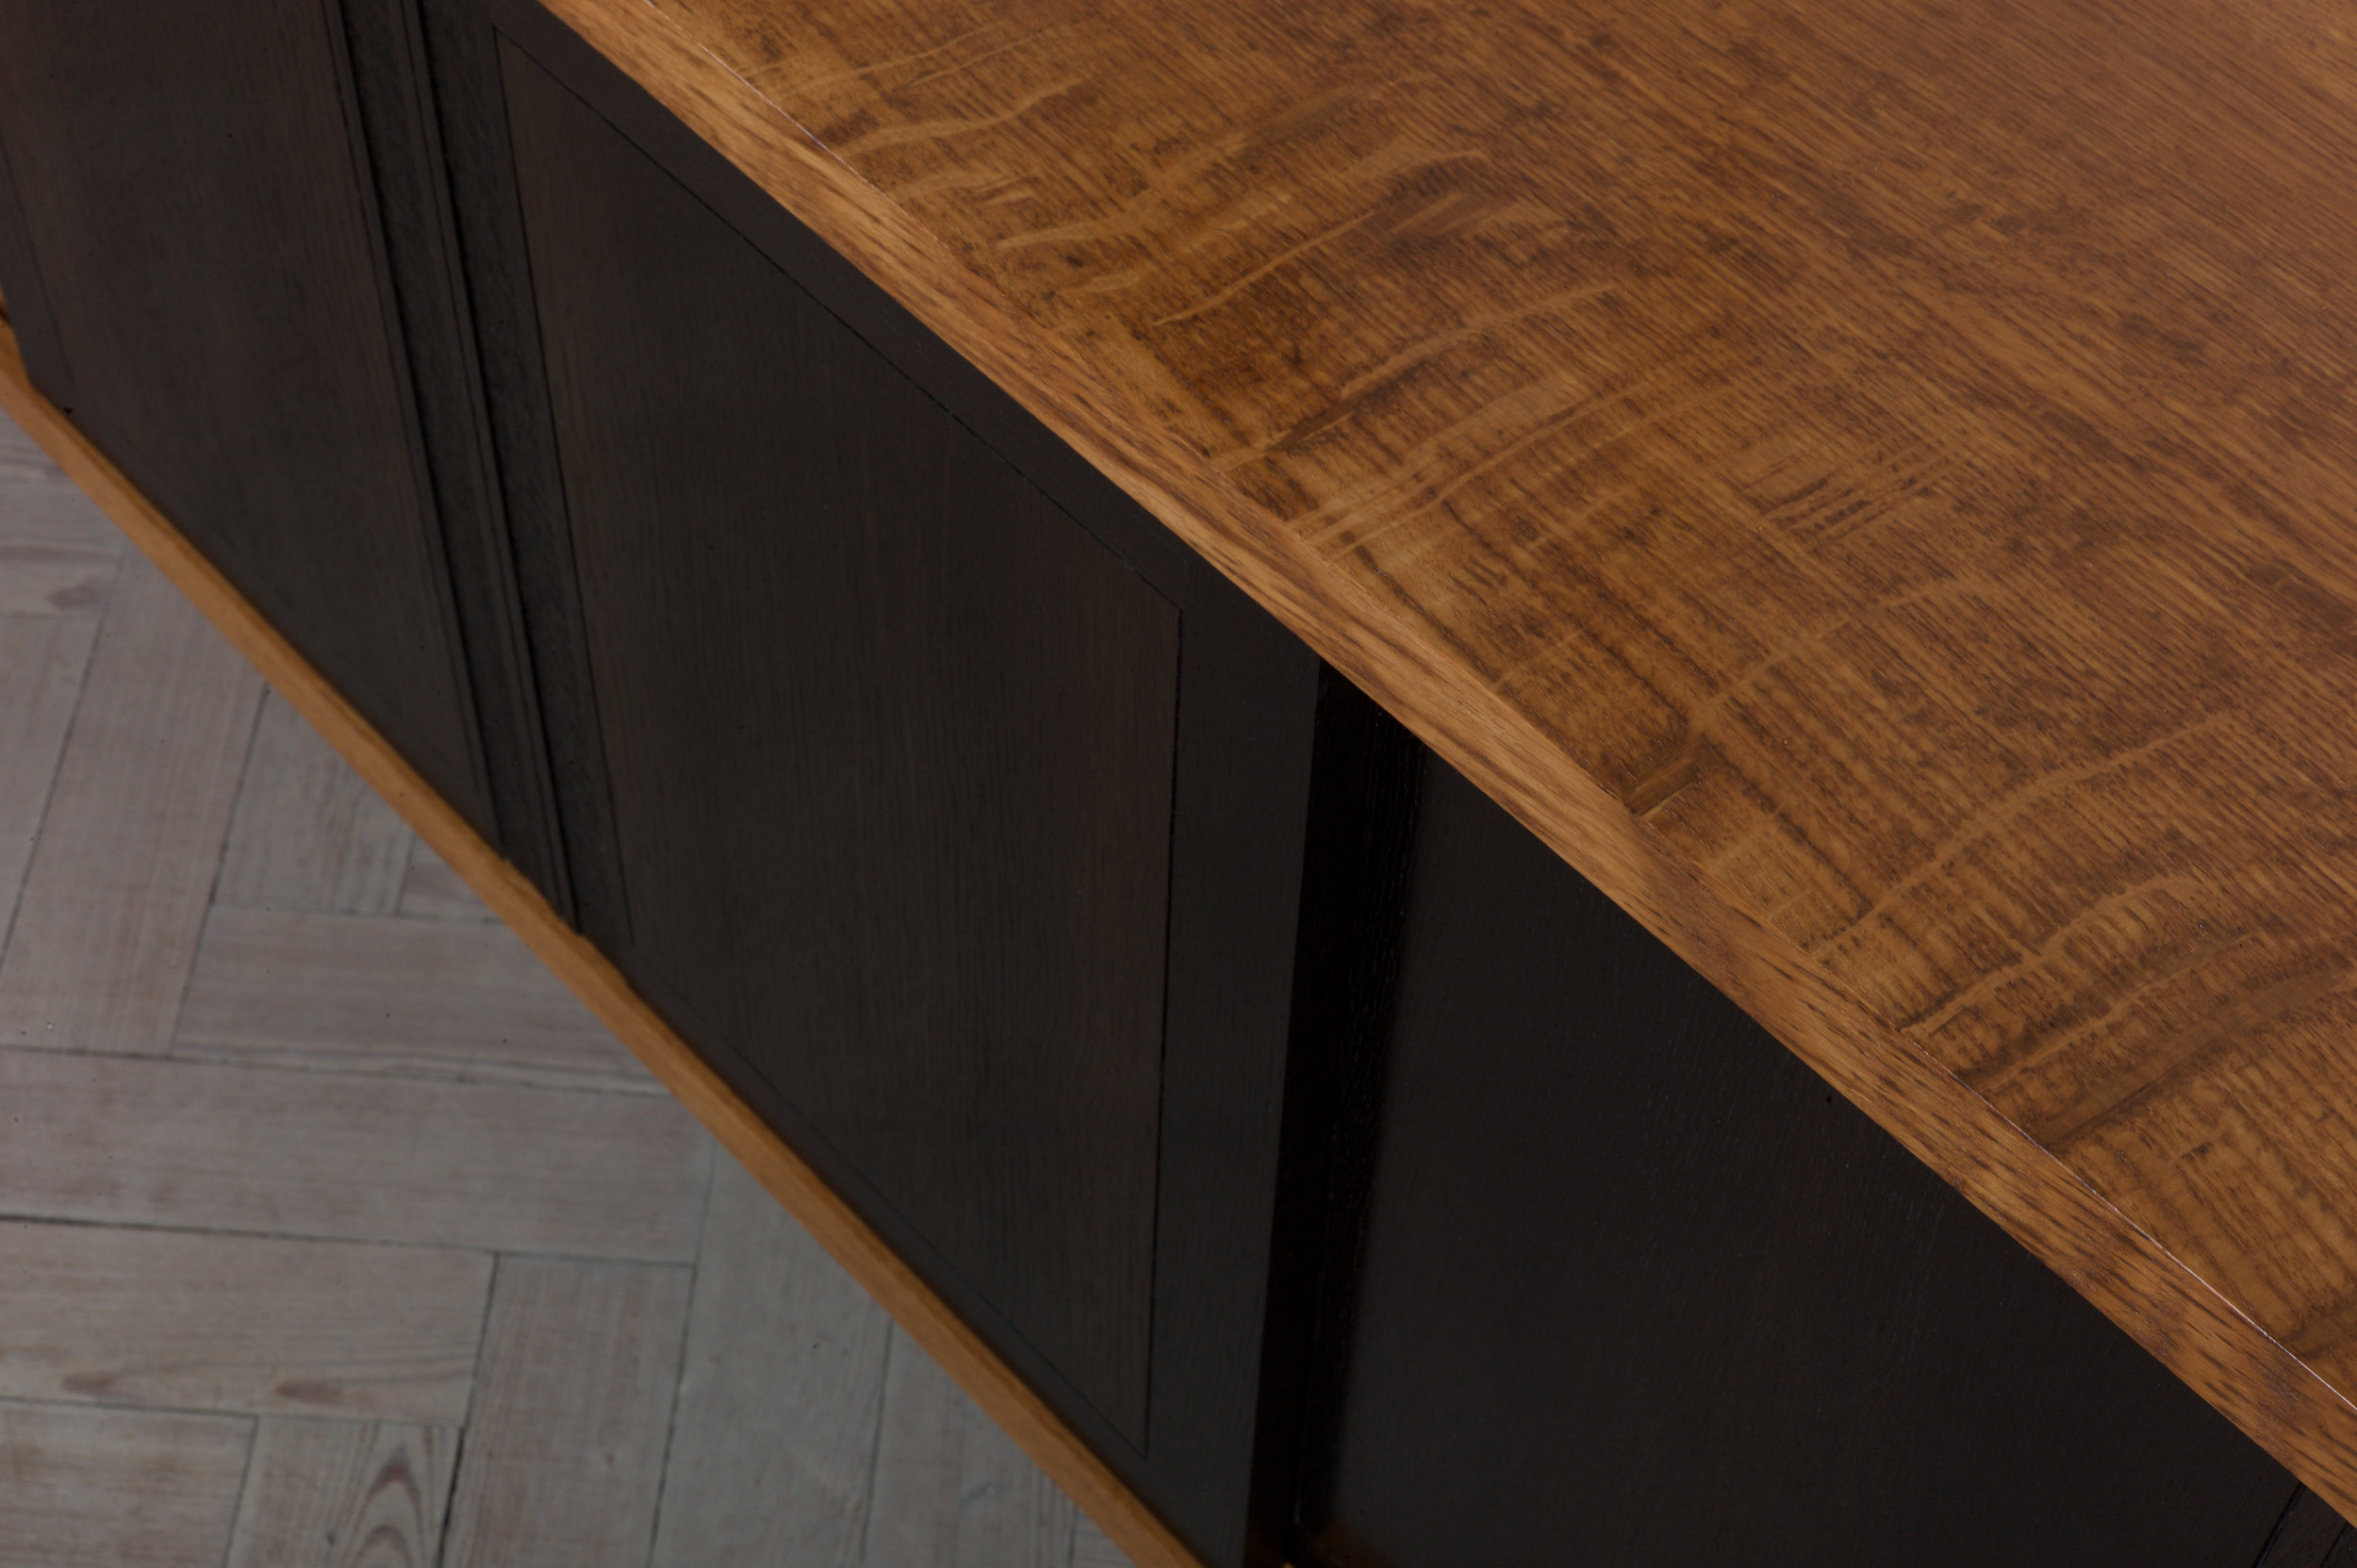 Petrel furniture sideboard in English brown oak and bog oak